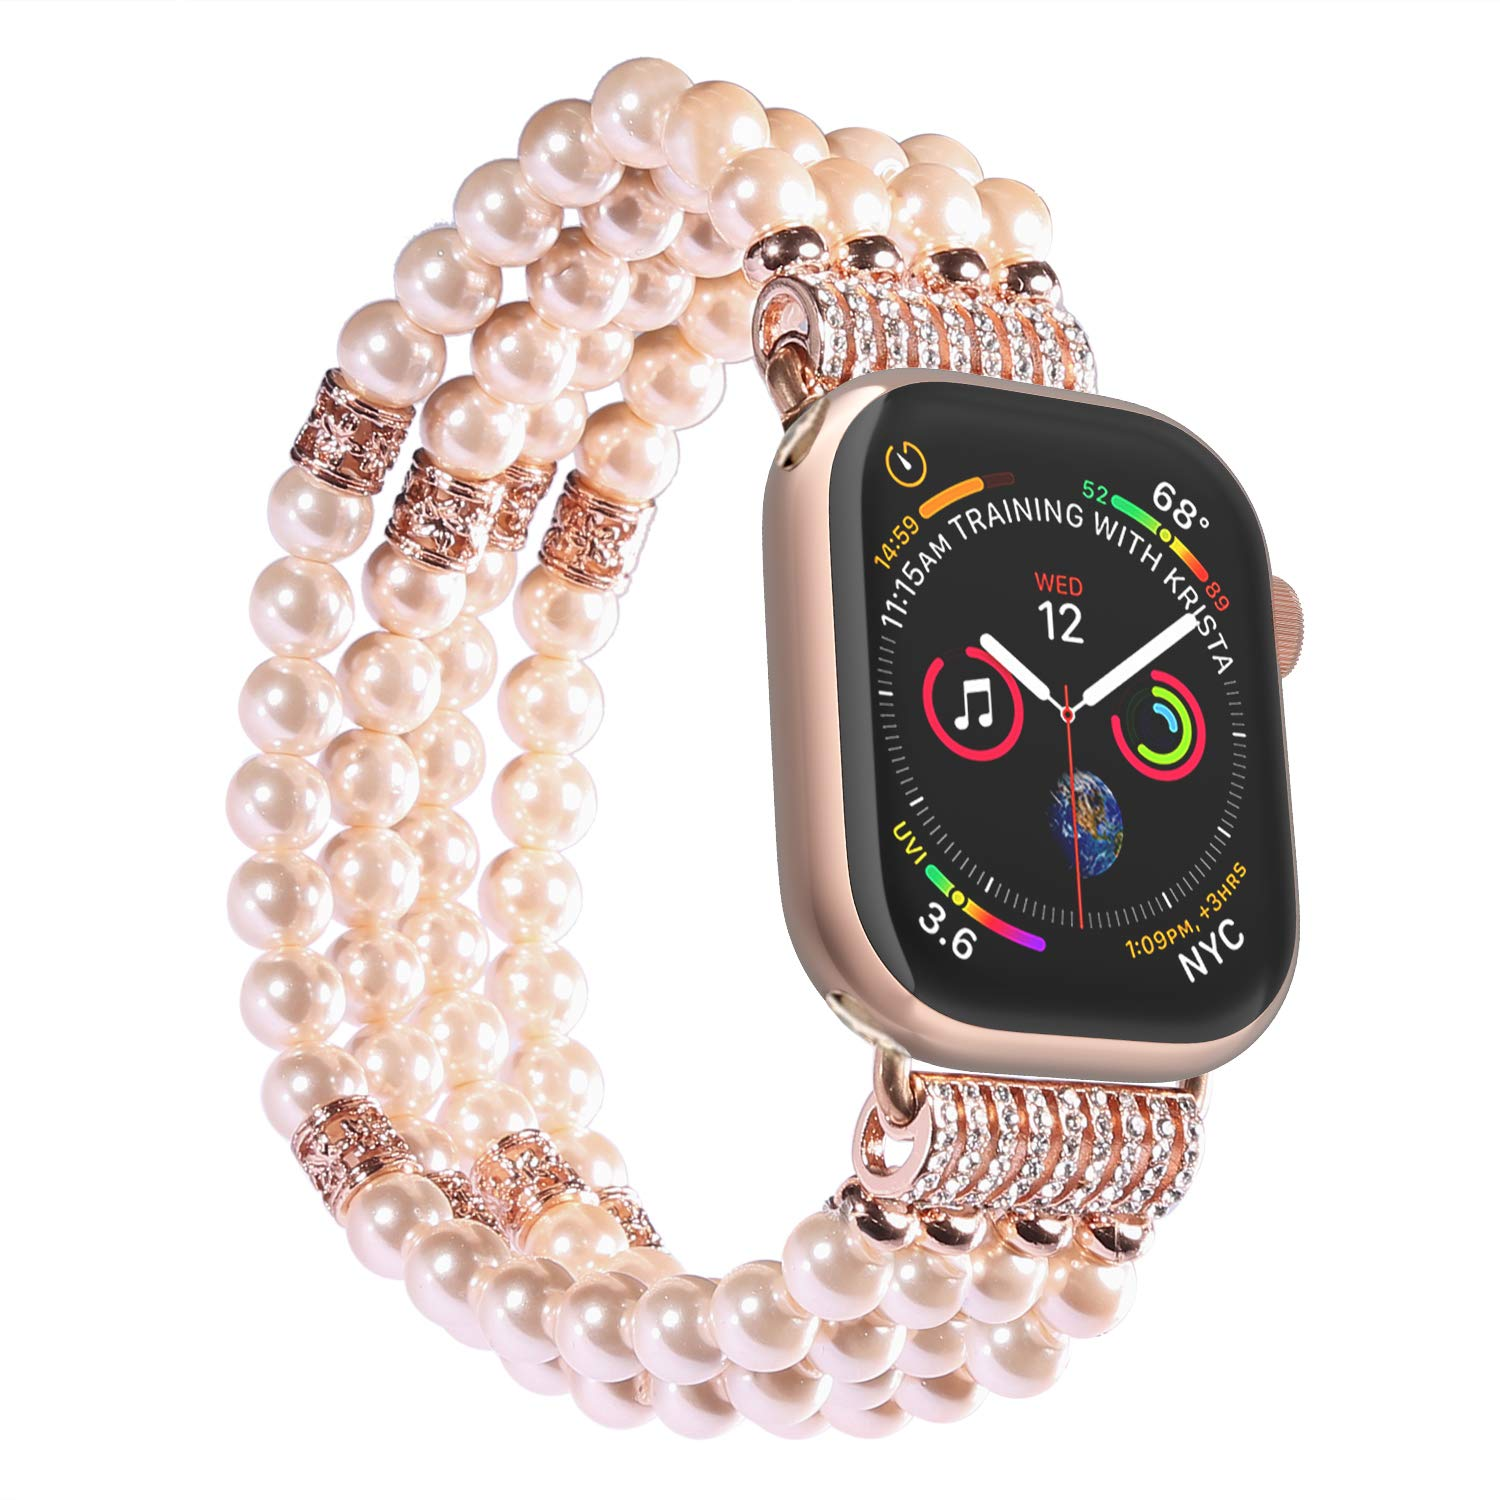 Imymax Replacement for Apple Watch Band 38mm/40mm Handmade Beaded Elastic Stretch Faux Pearl Bracelet Replacement iWatch Strap/Wristband for iWatch Series 4/3/2/1 - Pink for Women Girl by IMYMAX